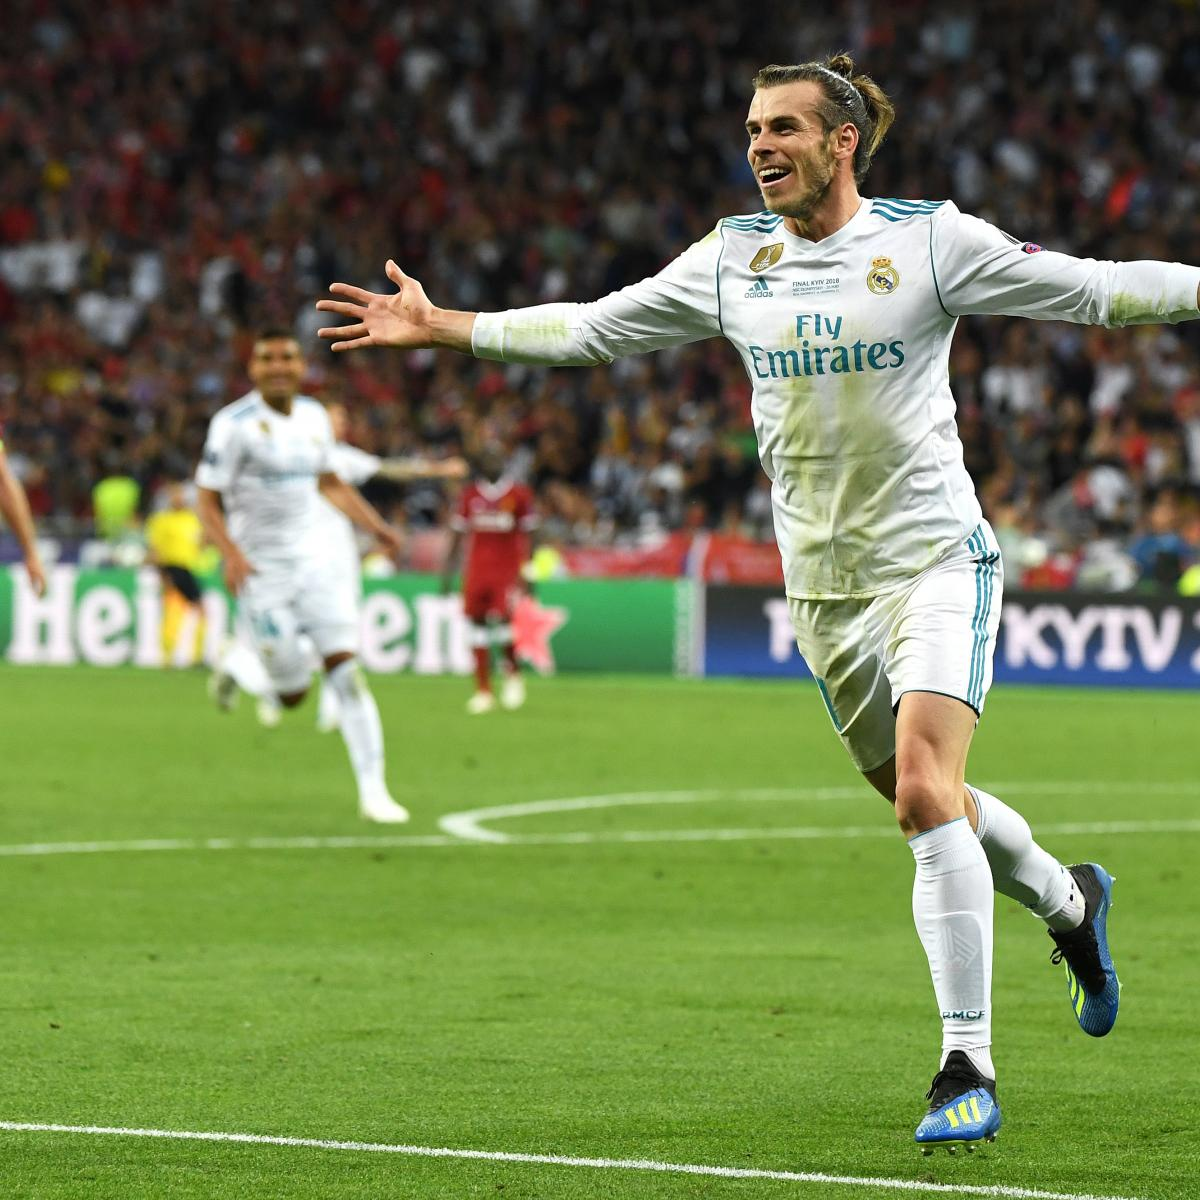 Flights From Liverpool To Madrid Rocket After Klopp S Side: Gareth Bale's Heroics Give Real Madrid Champions League